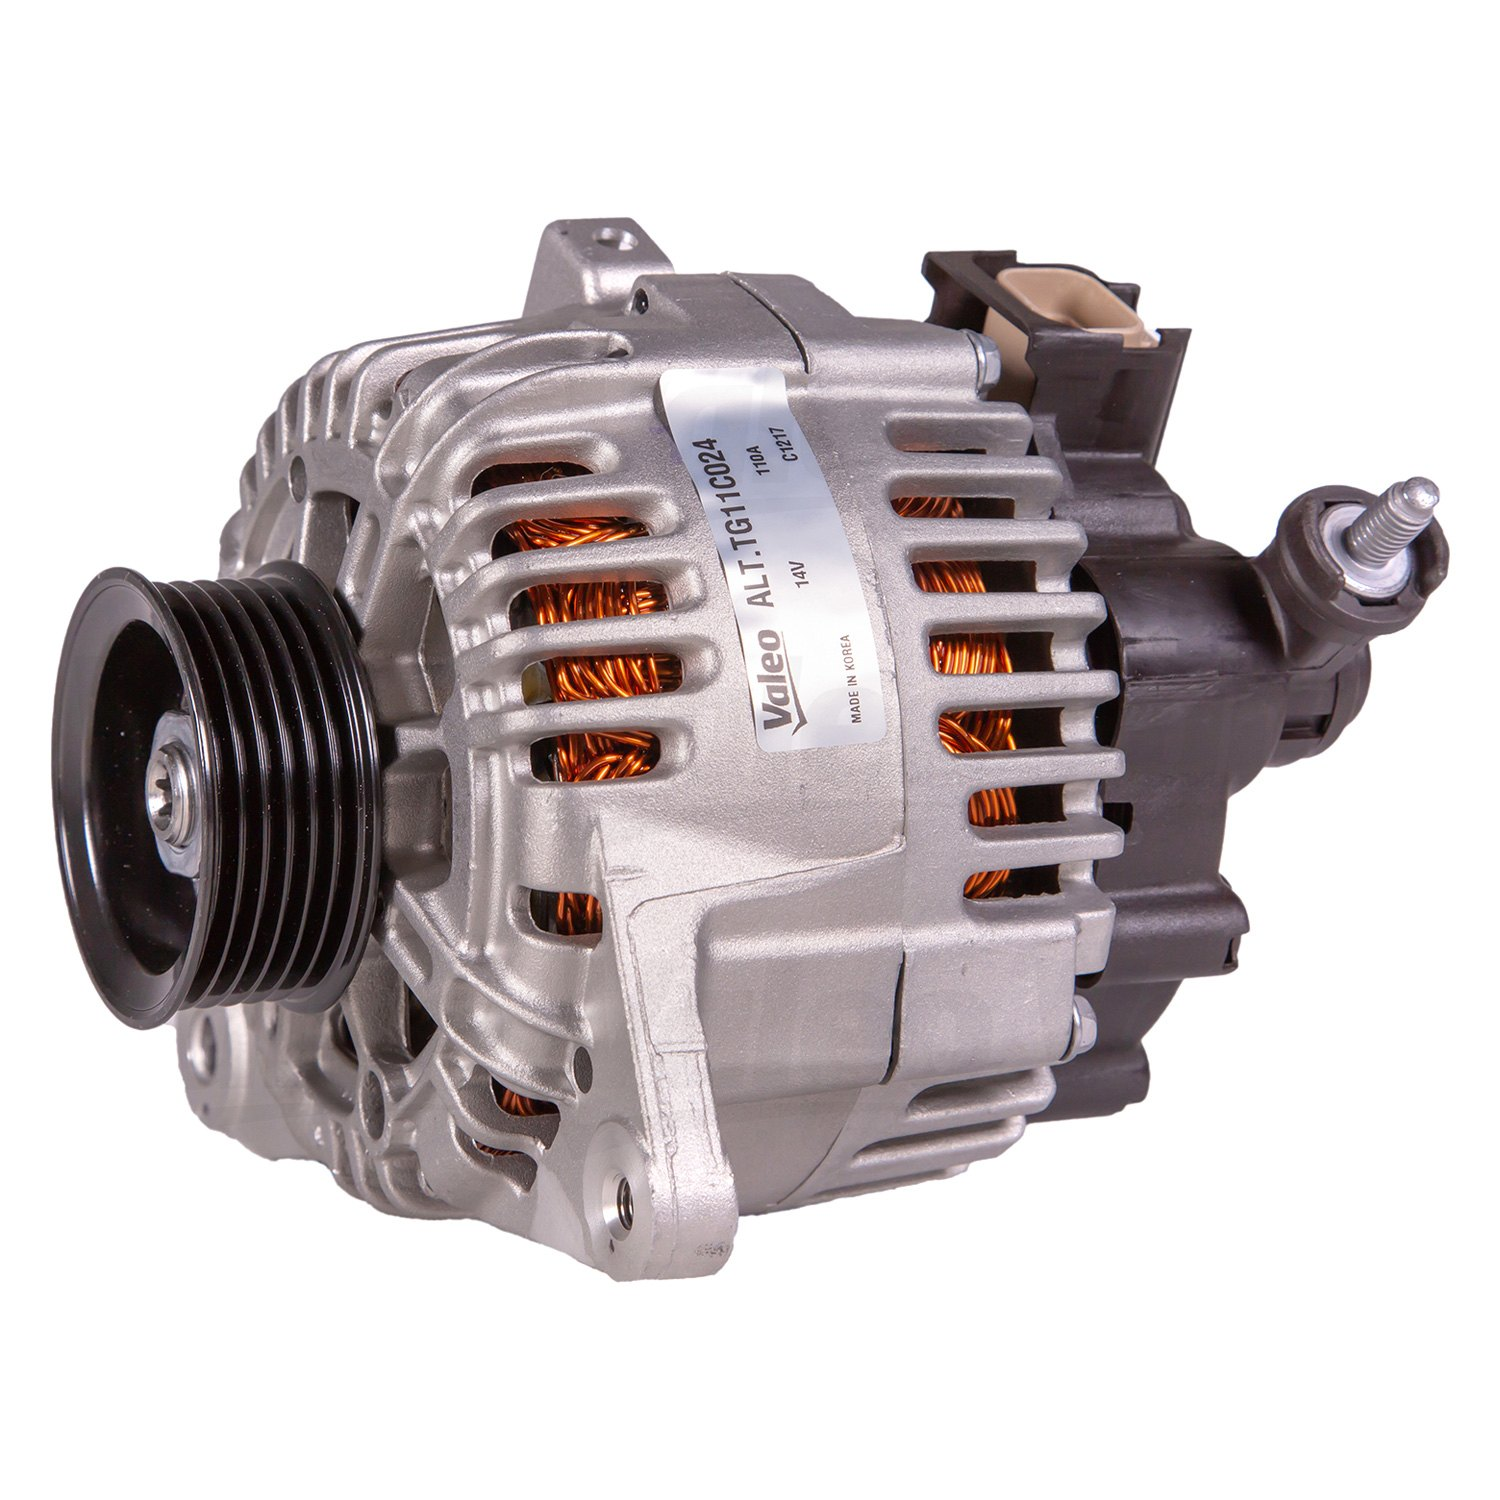 2004 Hyundai Sonata Alternator